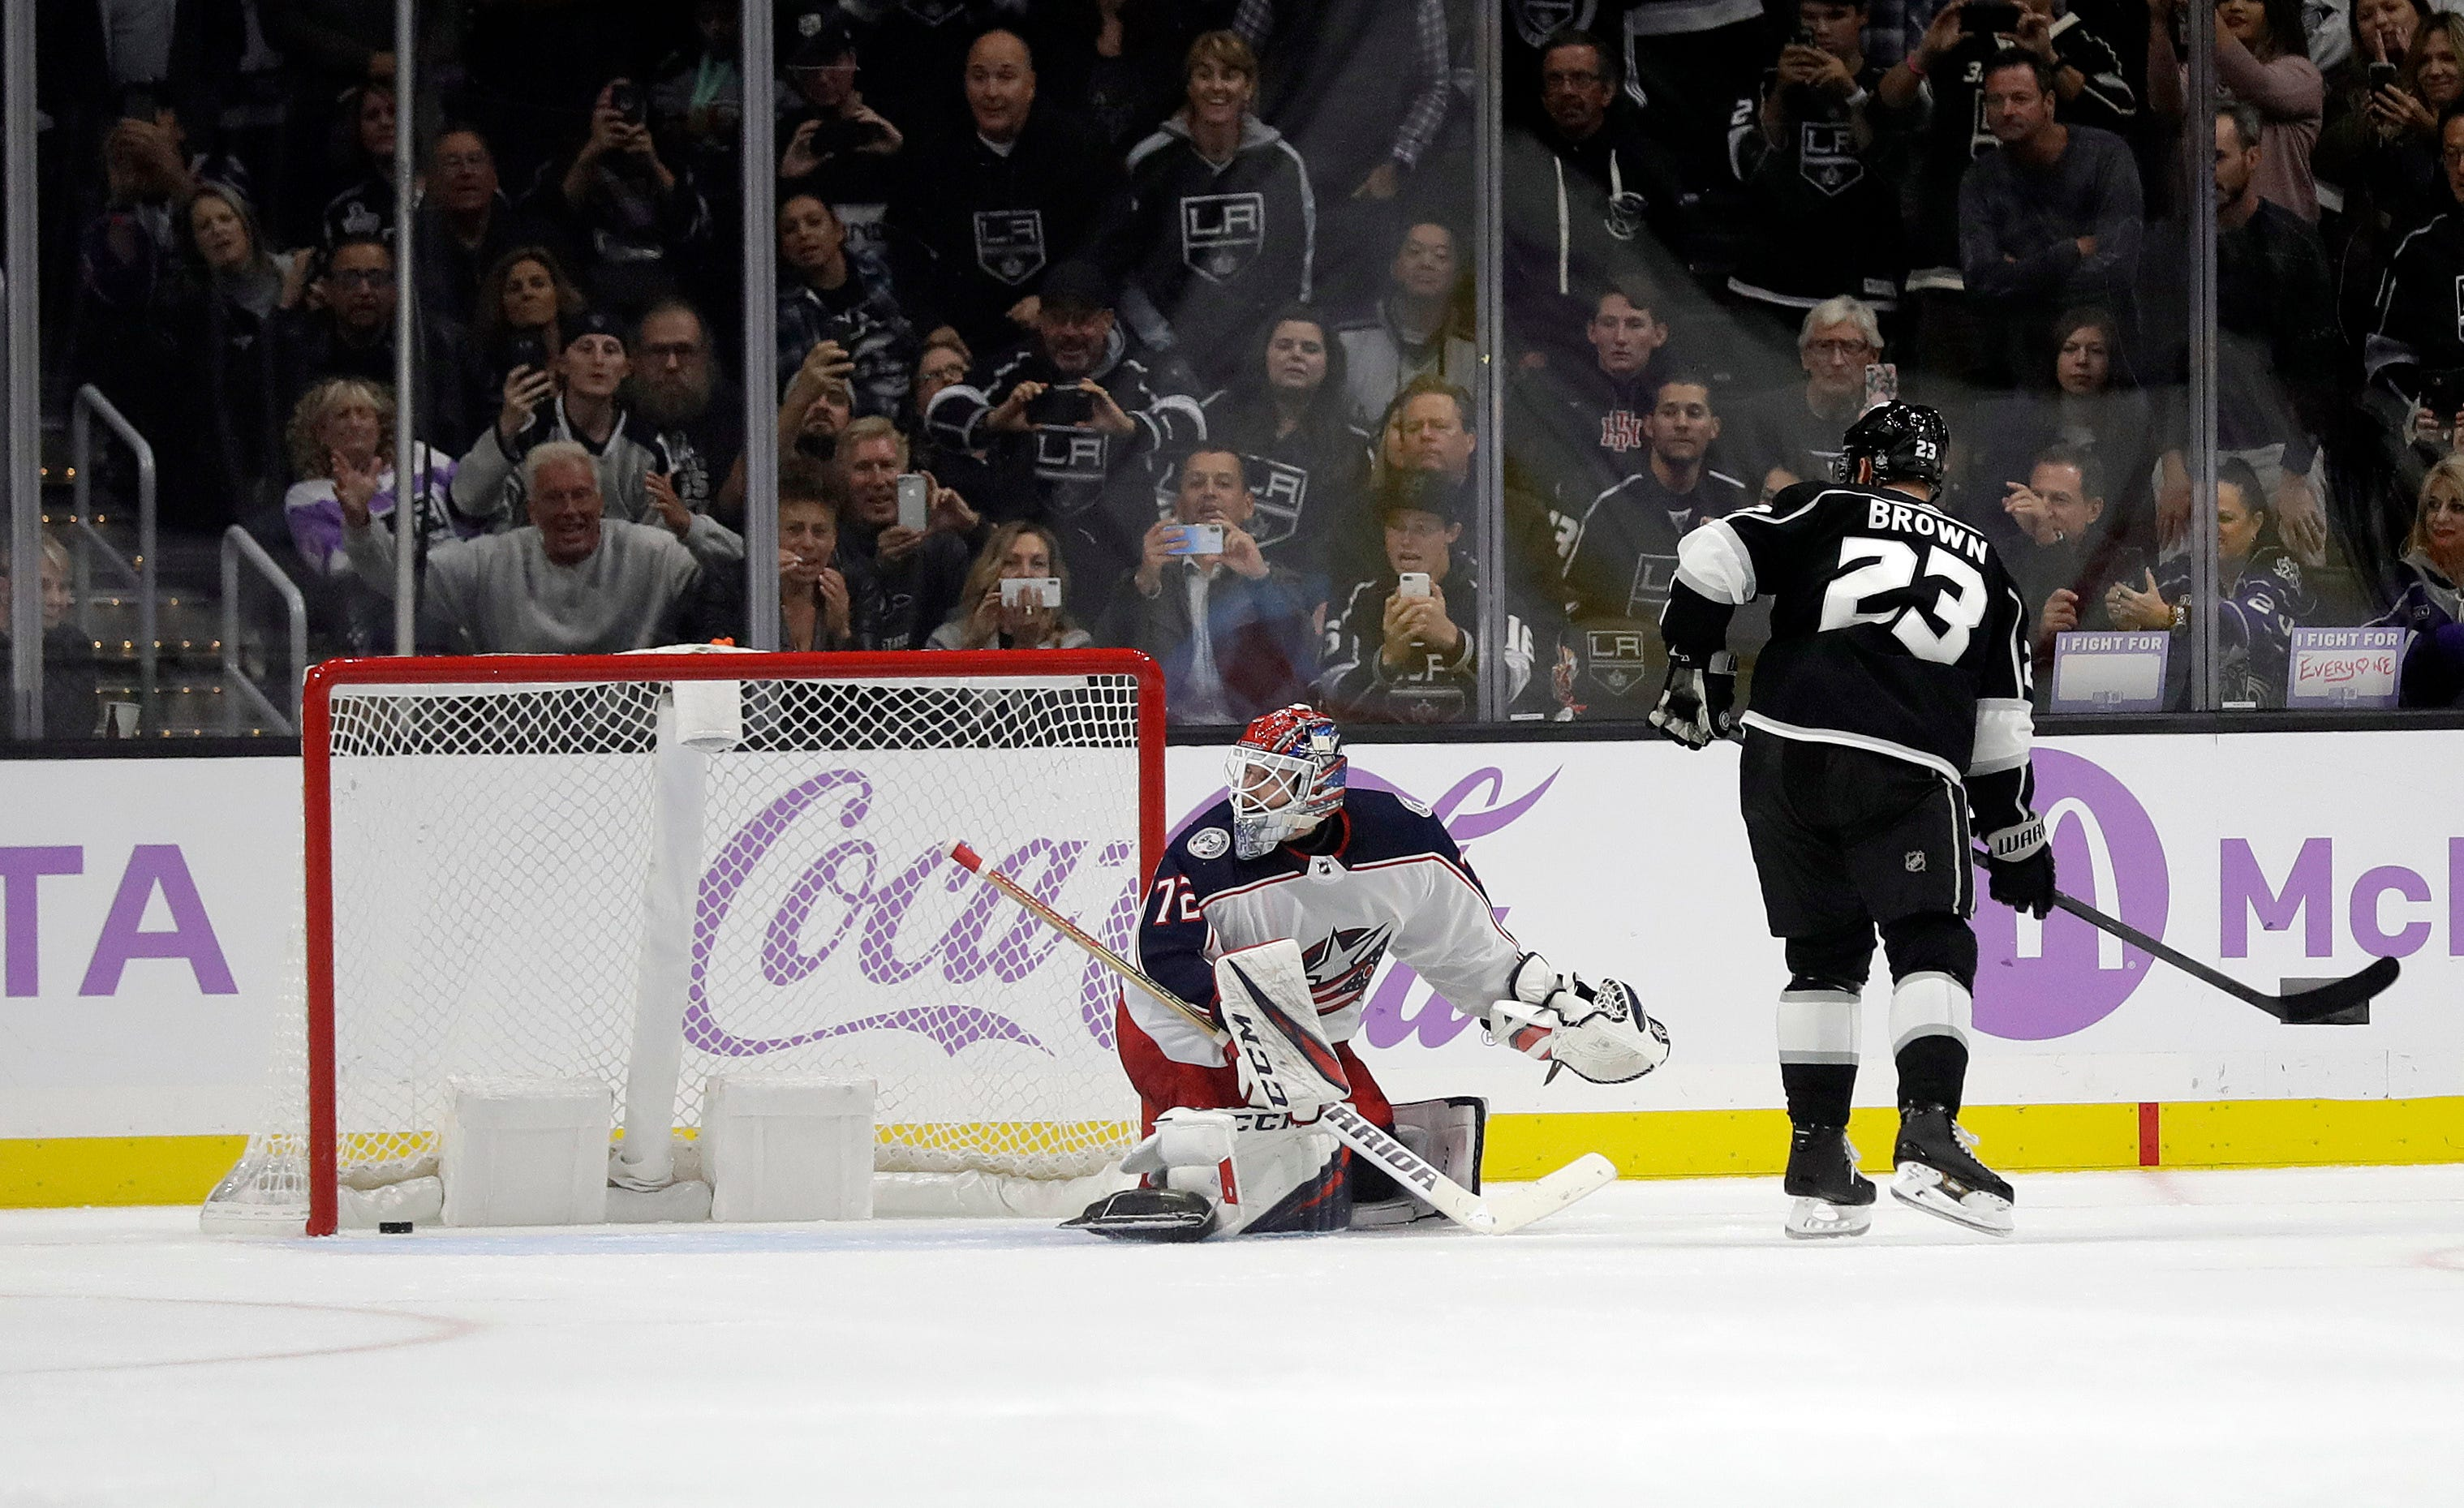 Carter, Campbell lead Kings past Blue Jackets 4-1